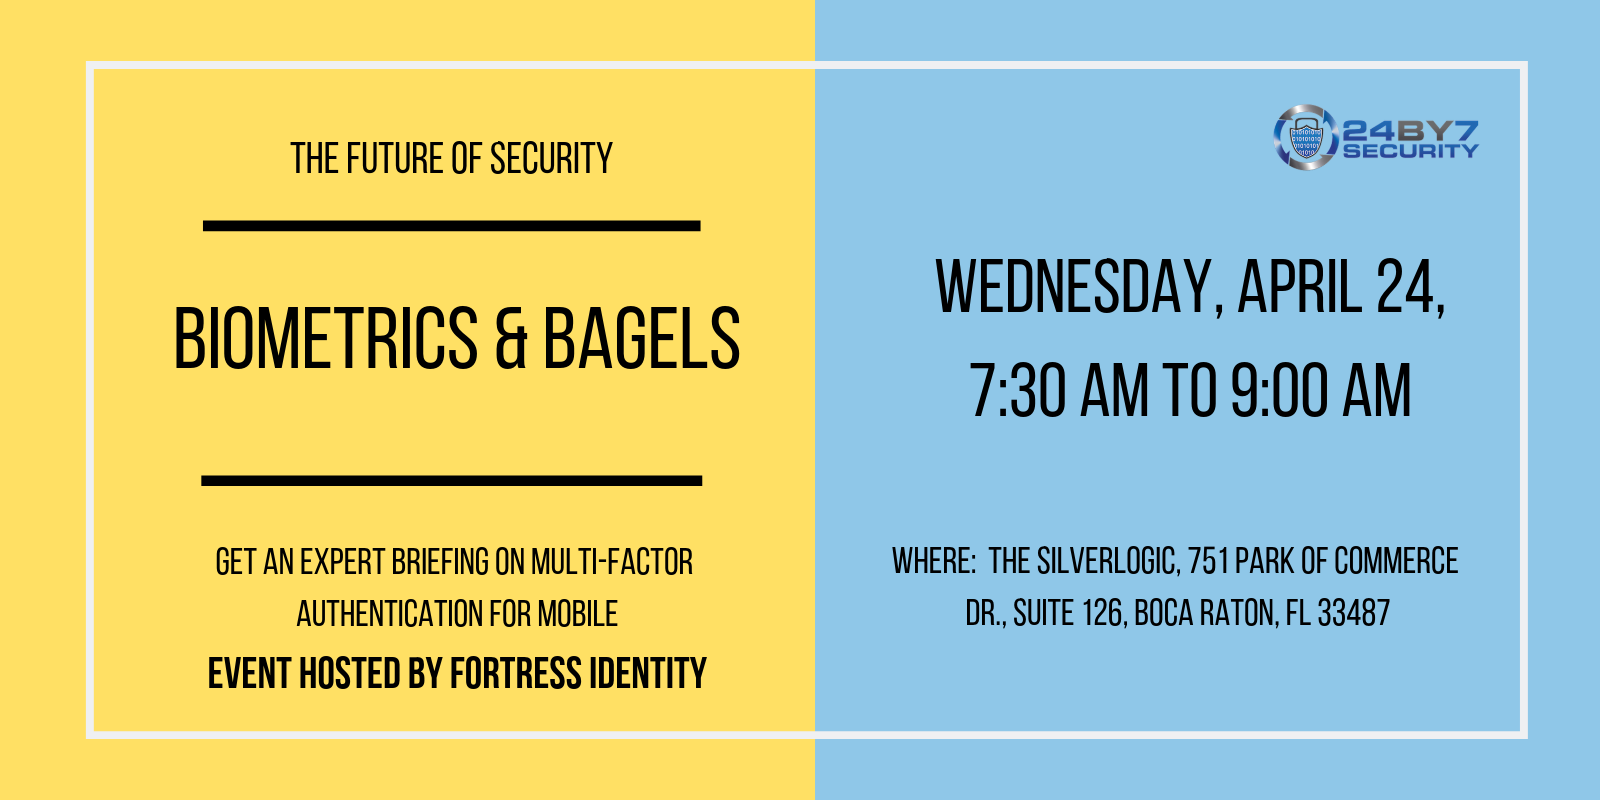 BIOMETRICS & BAGELS 24by7security